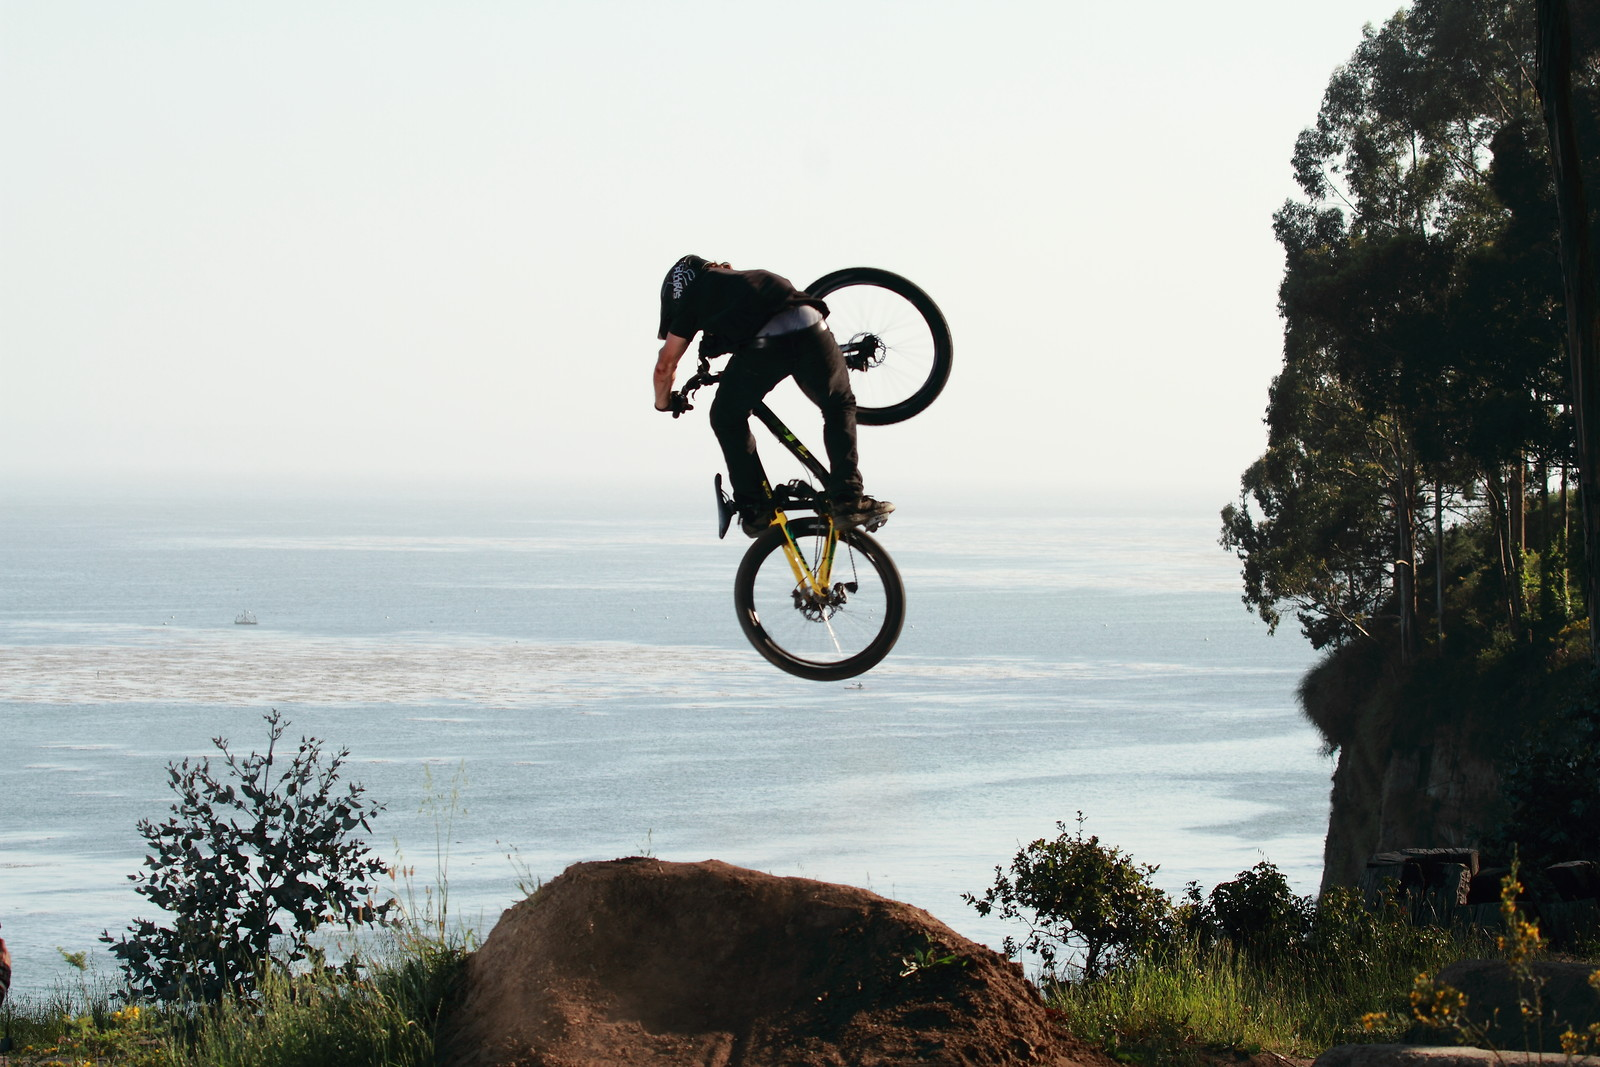 Cam McCaul Invert Table - JTalatzko - Mountain Biking Pictures - Vital MTB